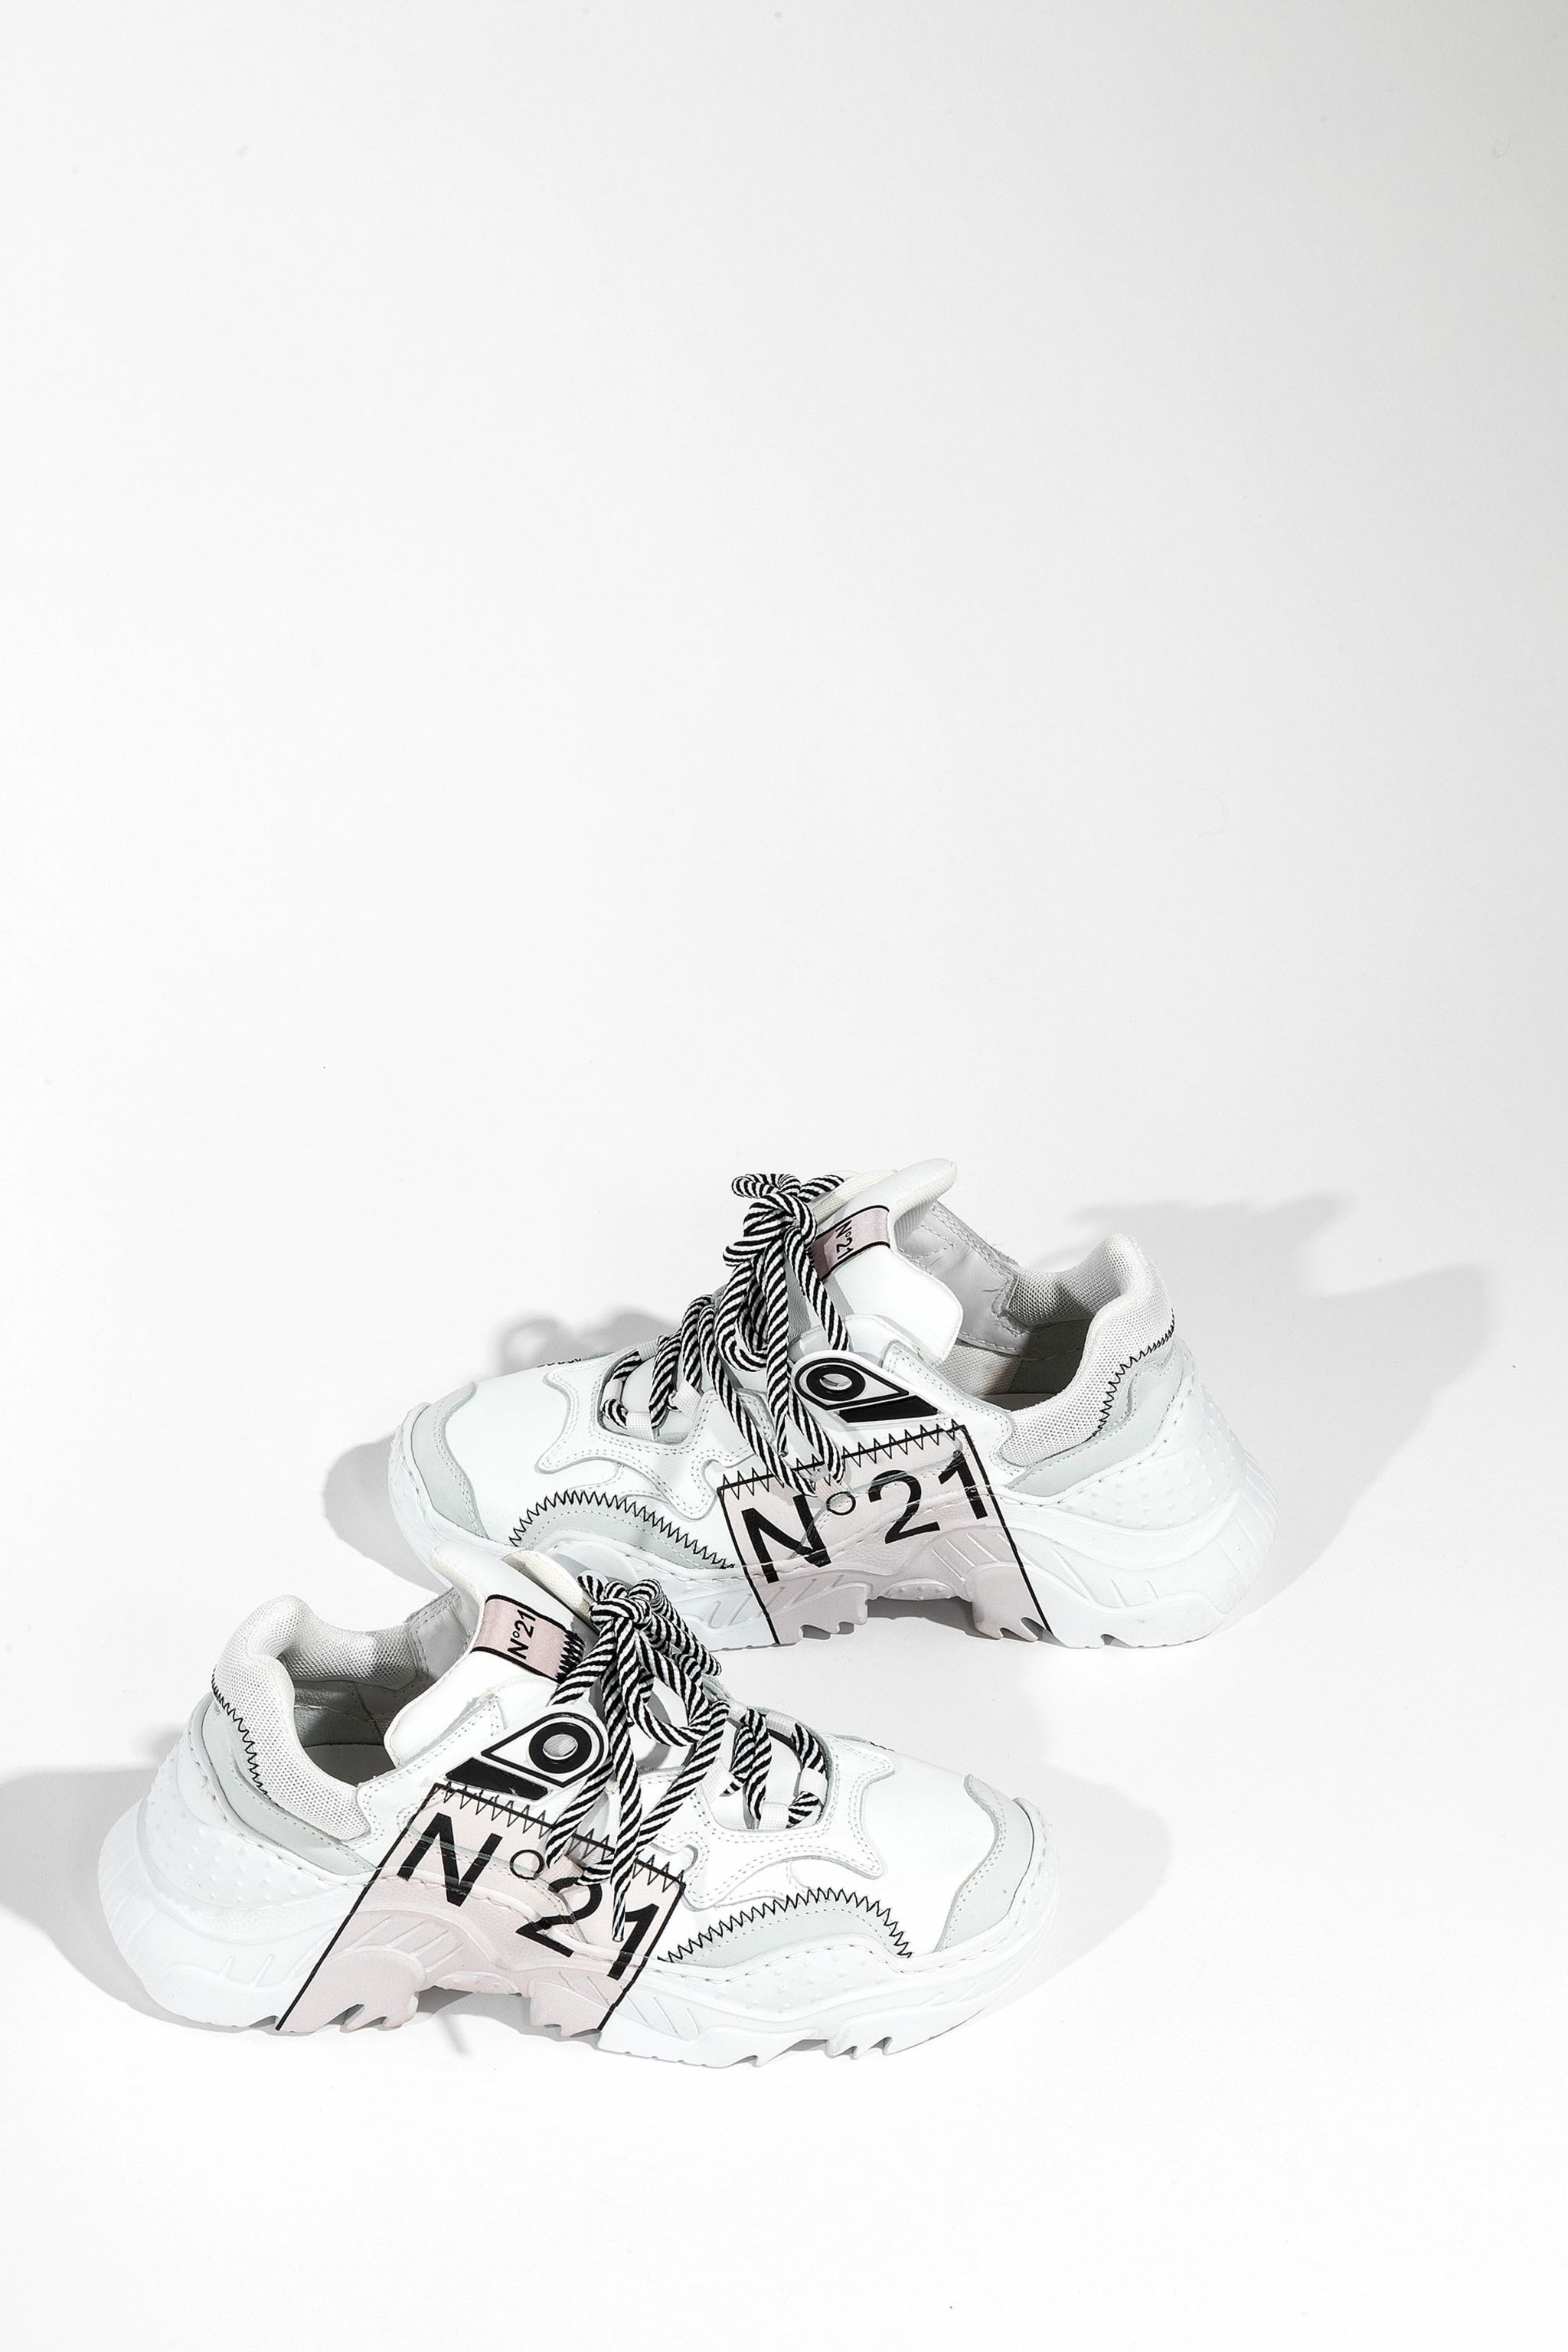 no21-limited-edition-billy-sneakers_13508562_17378857_2048